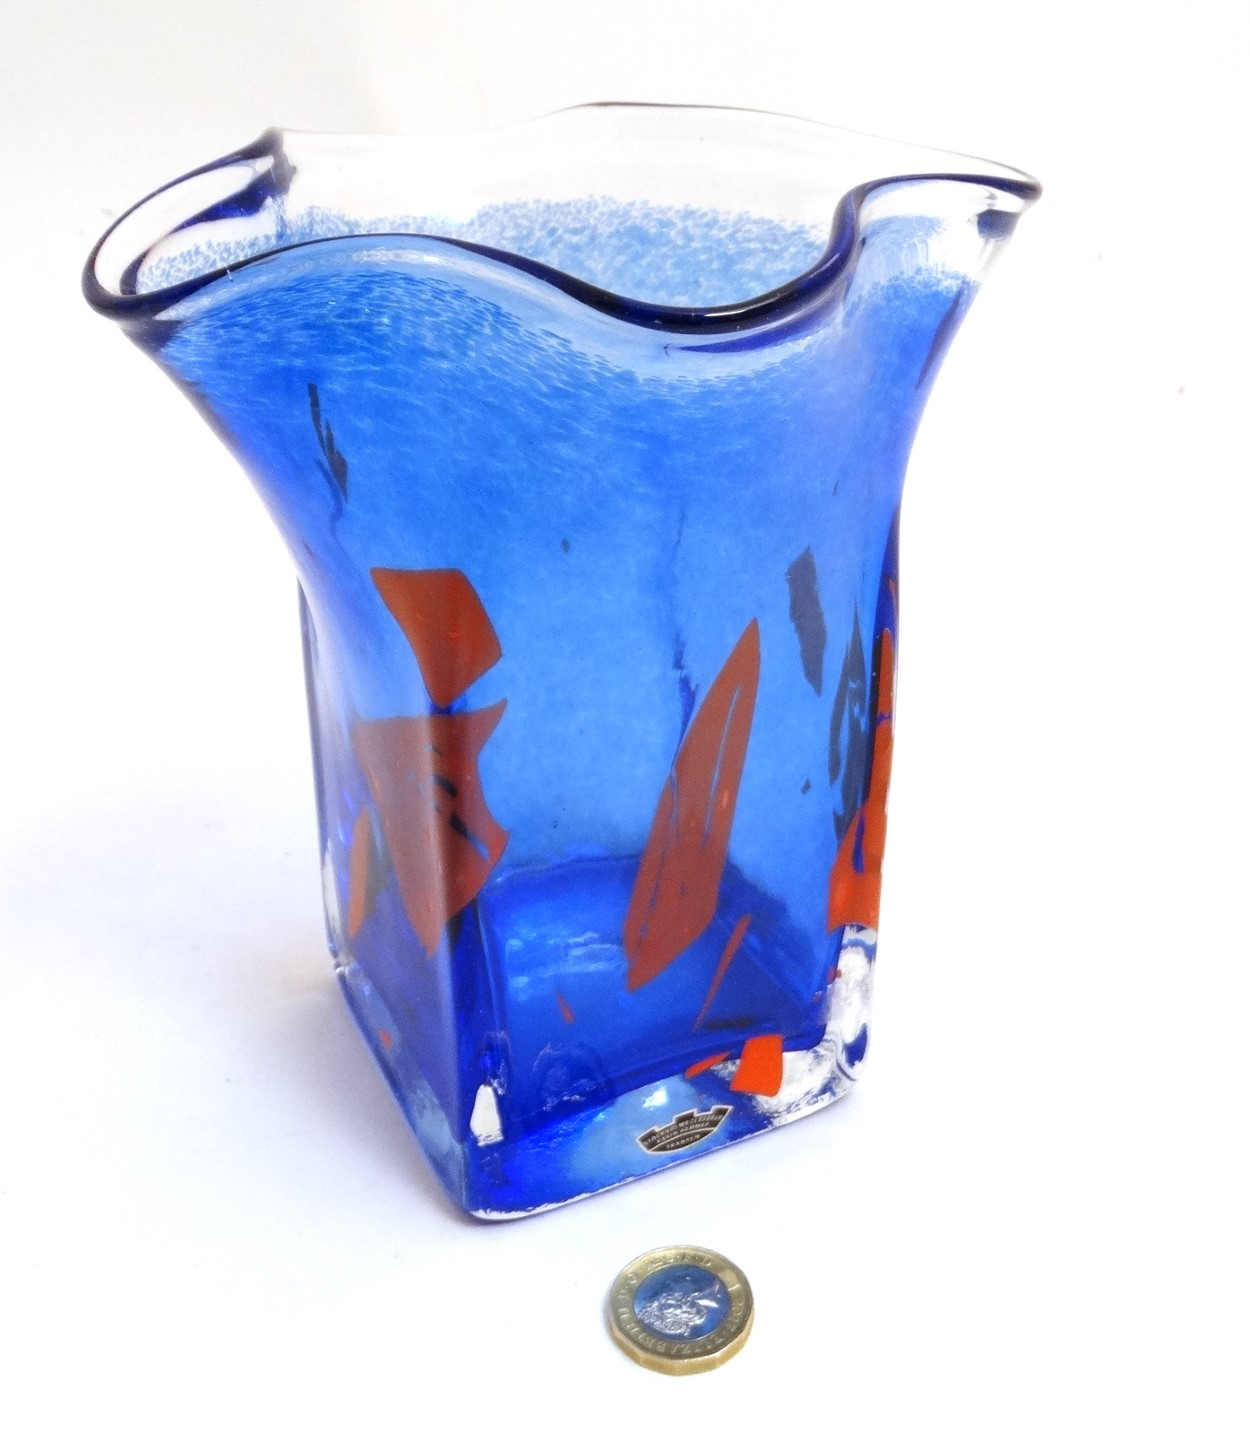 Lot 119 - Scandinavian Studio Art glass: A blue squared vase with frilled rim and red detail by Stockholms